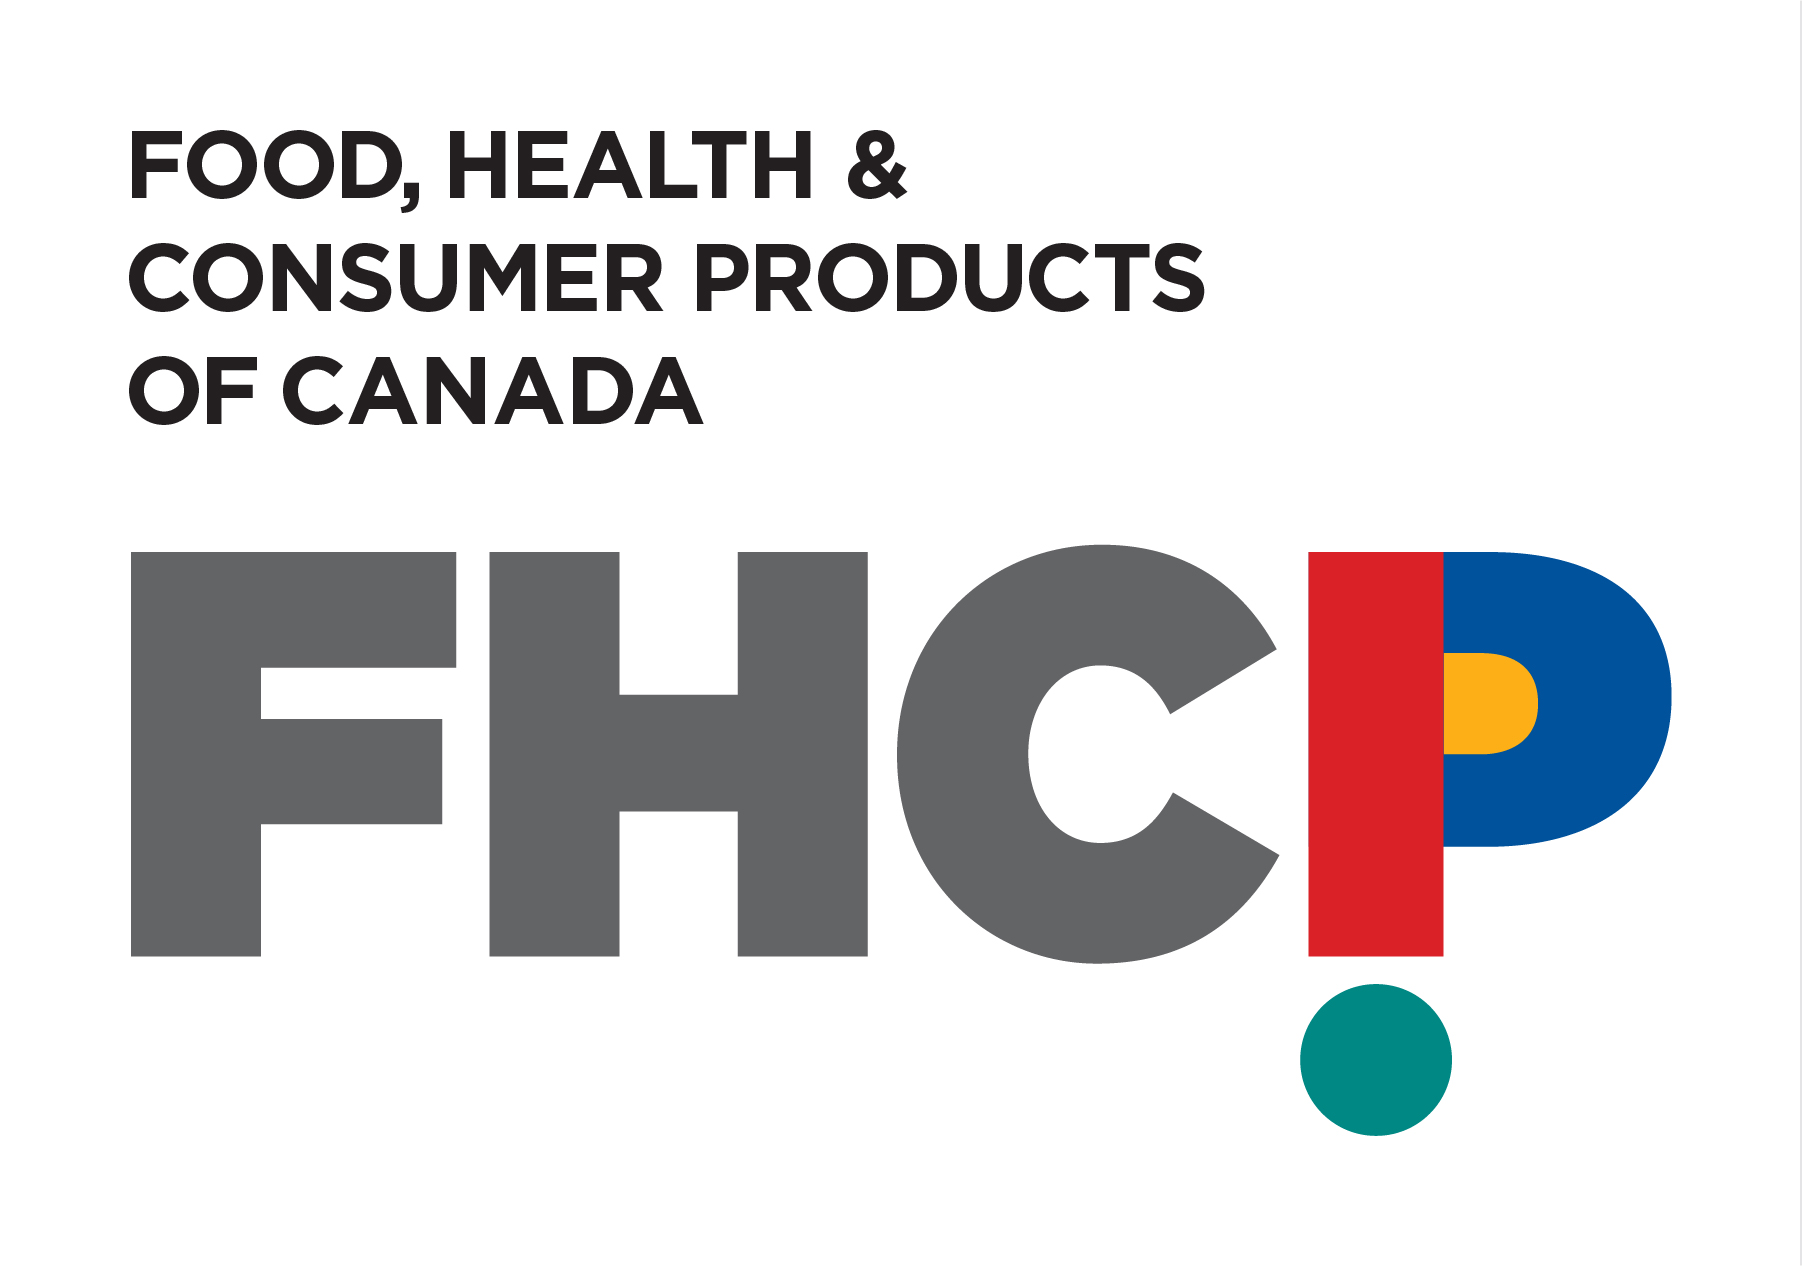 Food, Health & Consumer Products of Canada